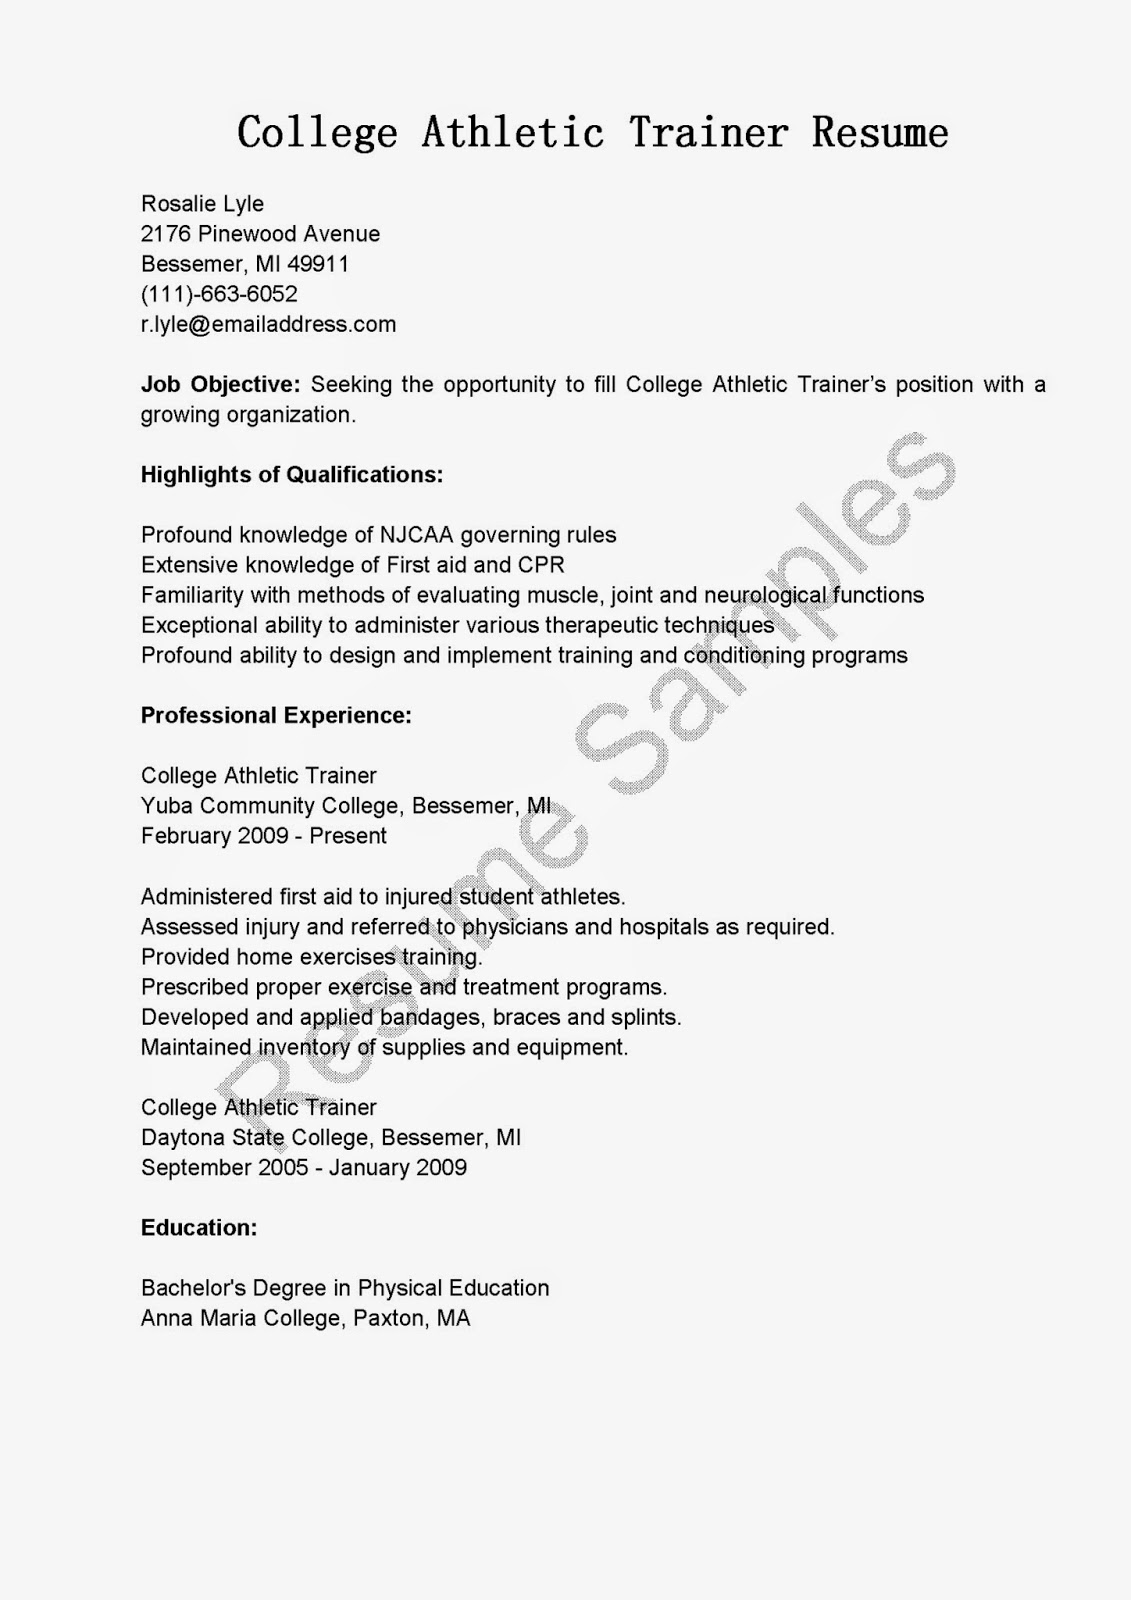 Jobstar Resume Guide Sample Resumes Cover Letter Resume Samples College Athletic Trainer Resume Sample